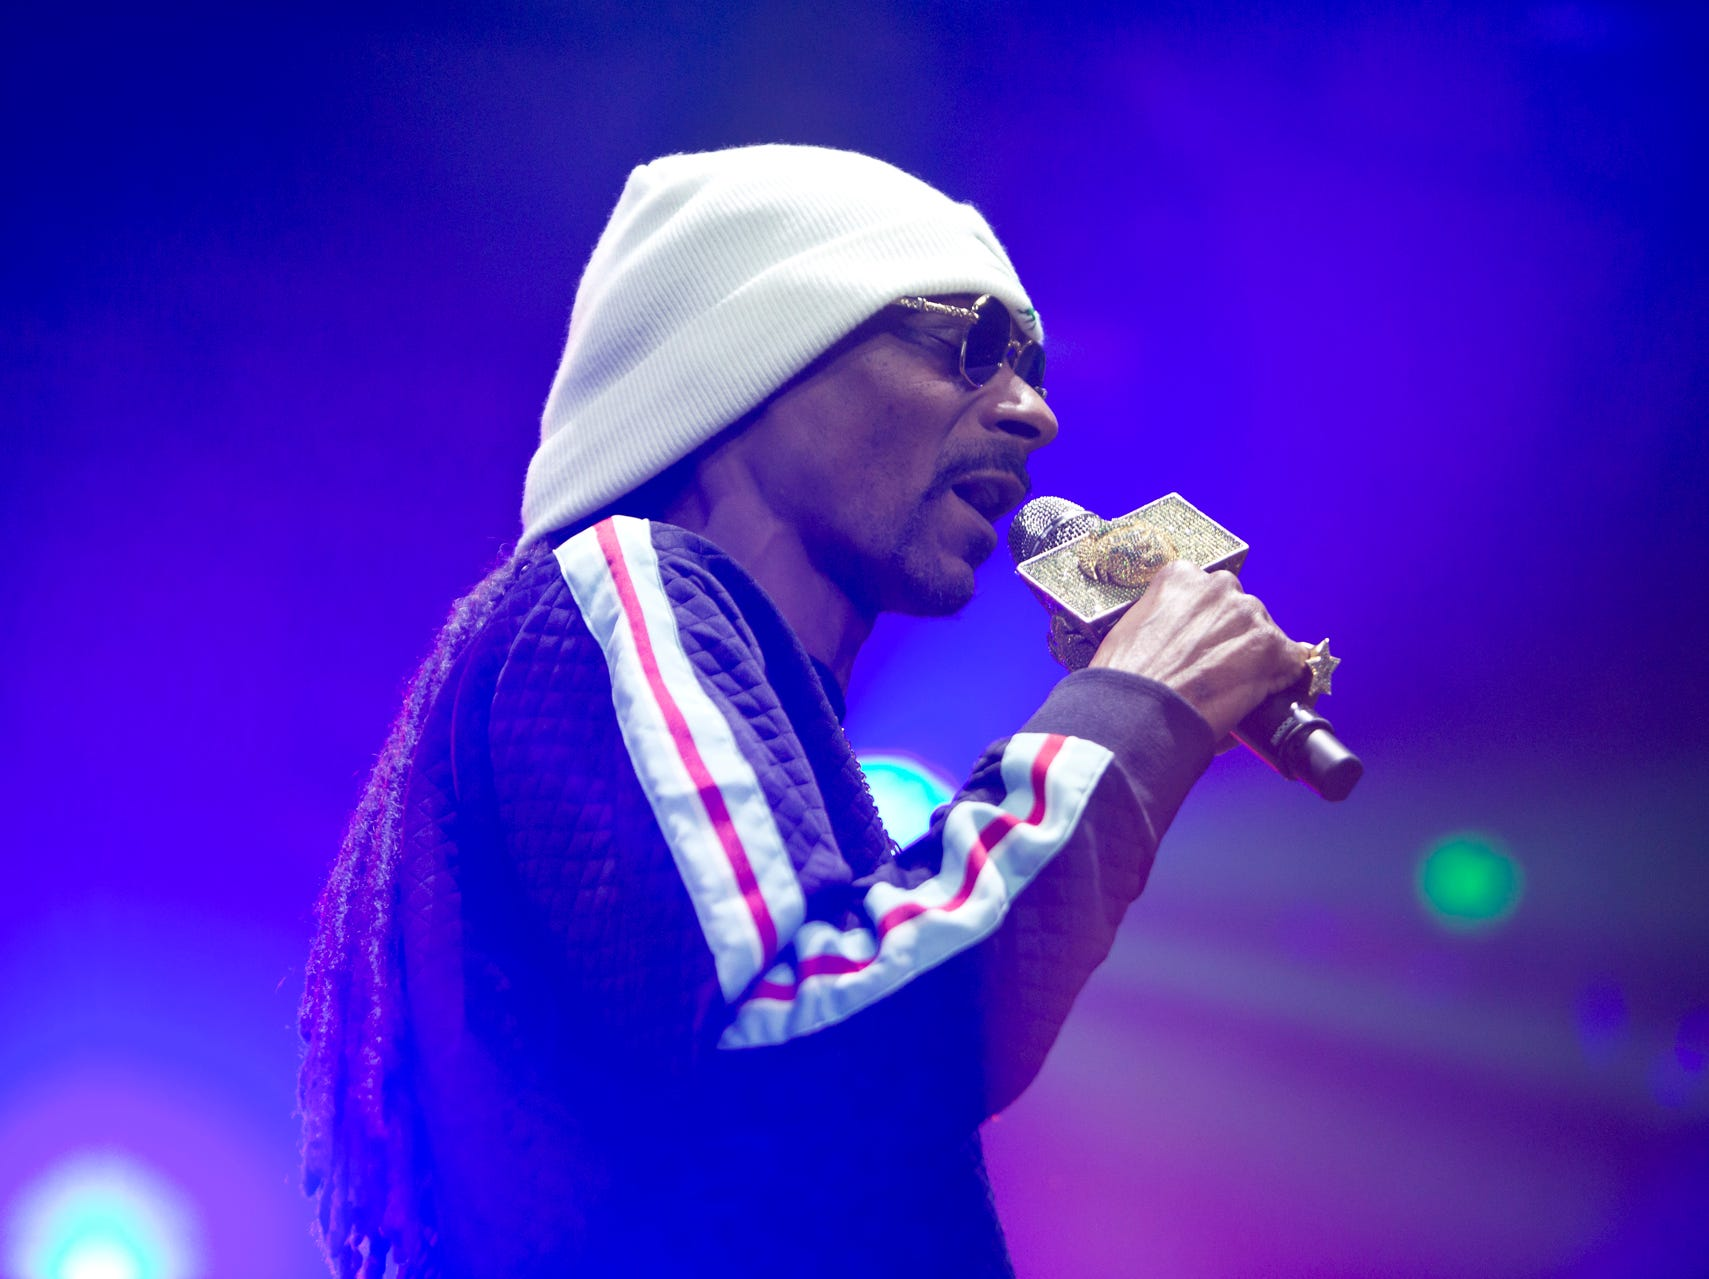 Snoop Dogg performs at the TPC Scottsdale Birds Nest during the Waste Management Phoenix Open on Friday, Feb. 1, 2019.  Lisa Webb/Special for AZCentral.com